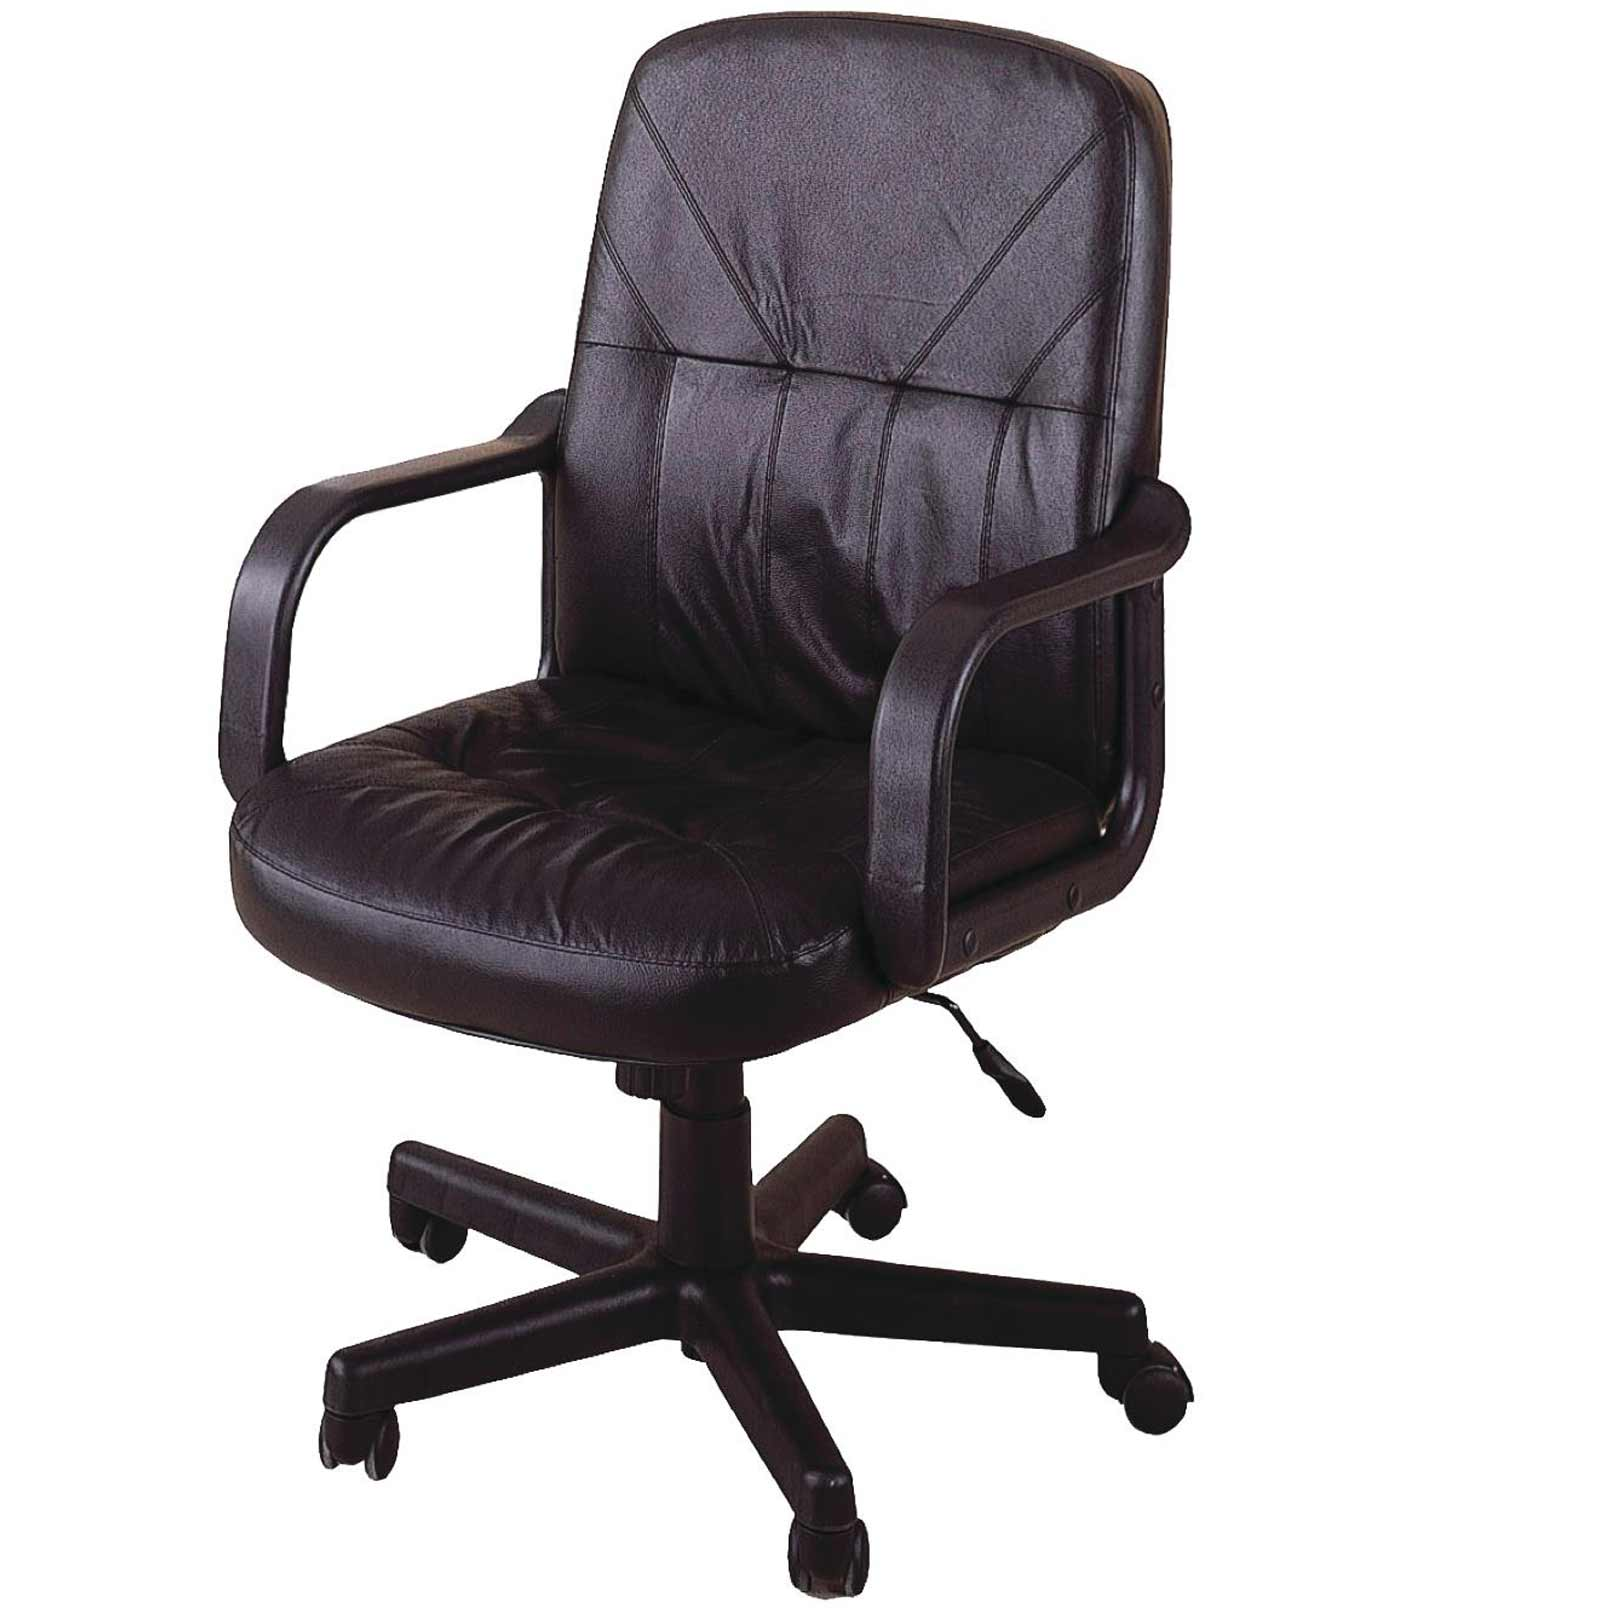 Leather Office Chairs Office Chairs Brown Leather Office Chairs